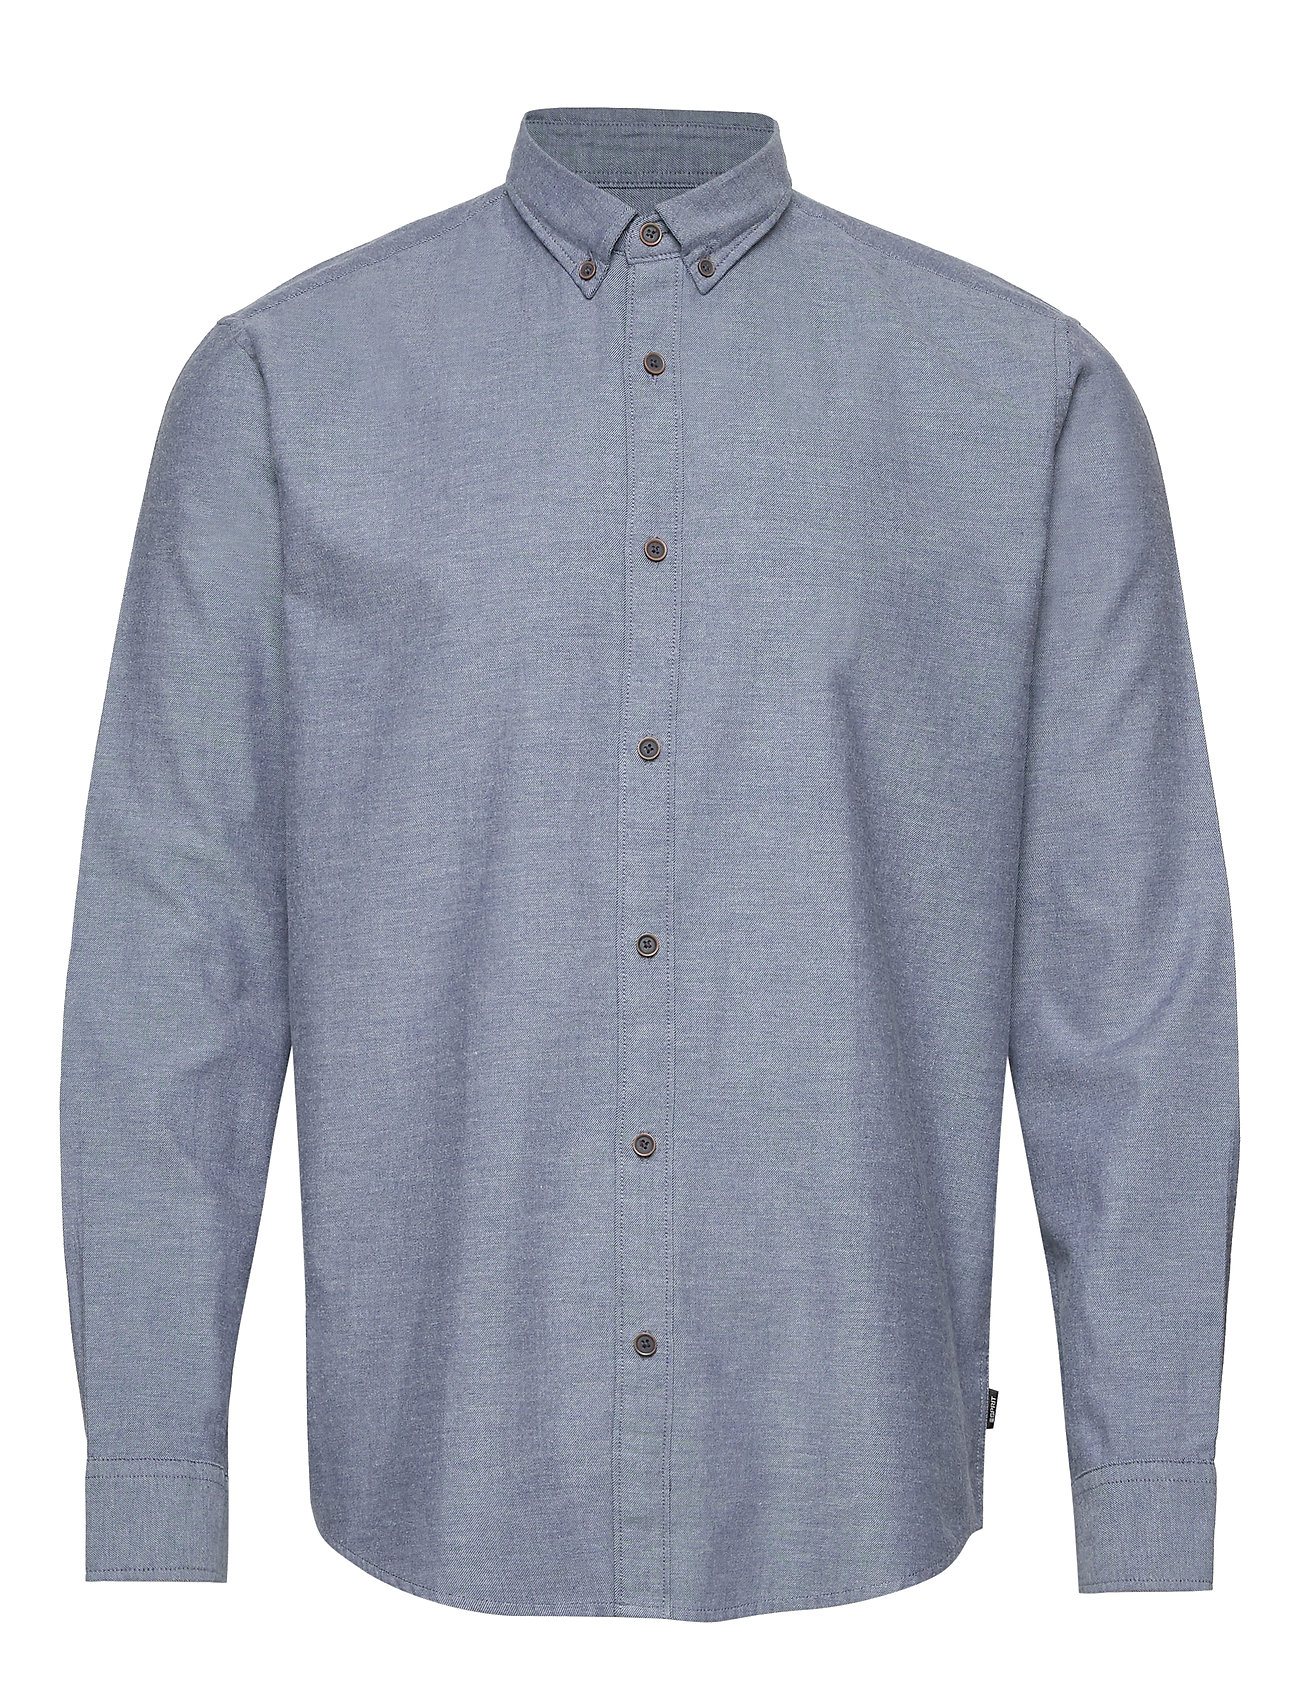 Esprit Casual Shirts woven - BLUE 5